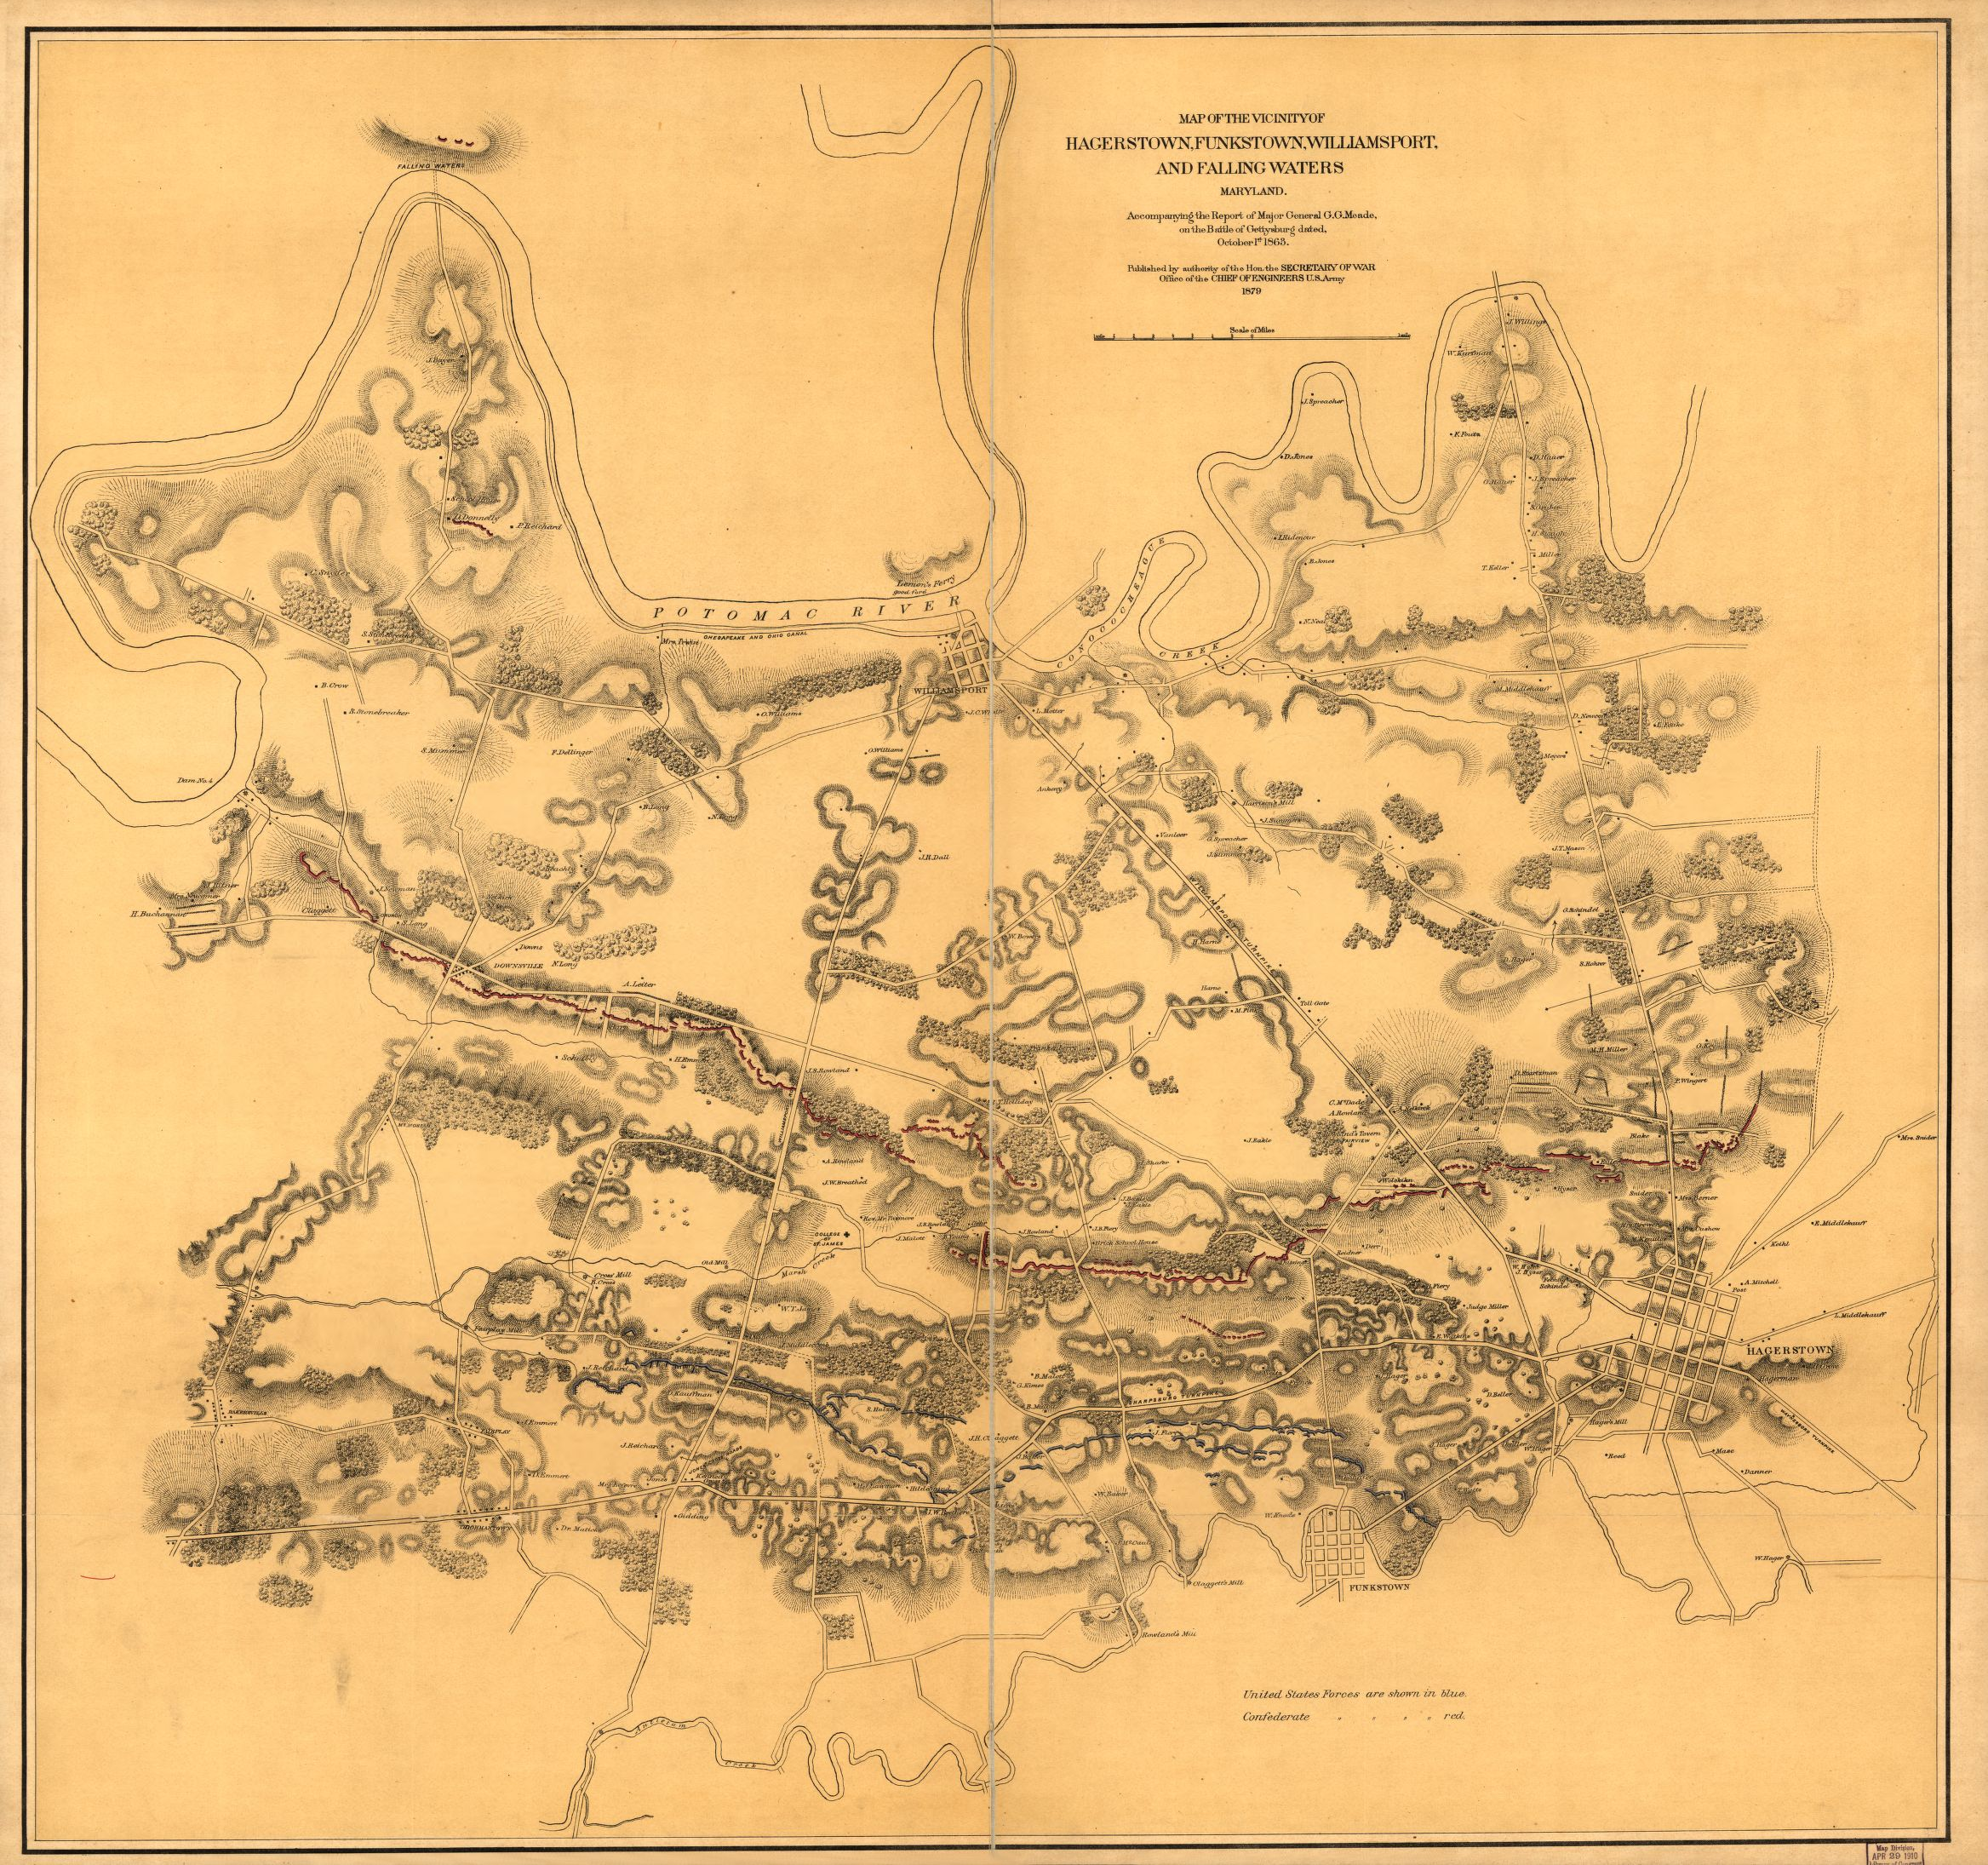 Map Of The Vicinity Of Hagerstown Funkstown Williamsport And Falling Waters Maryland